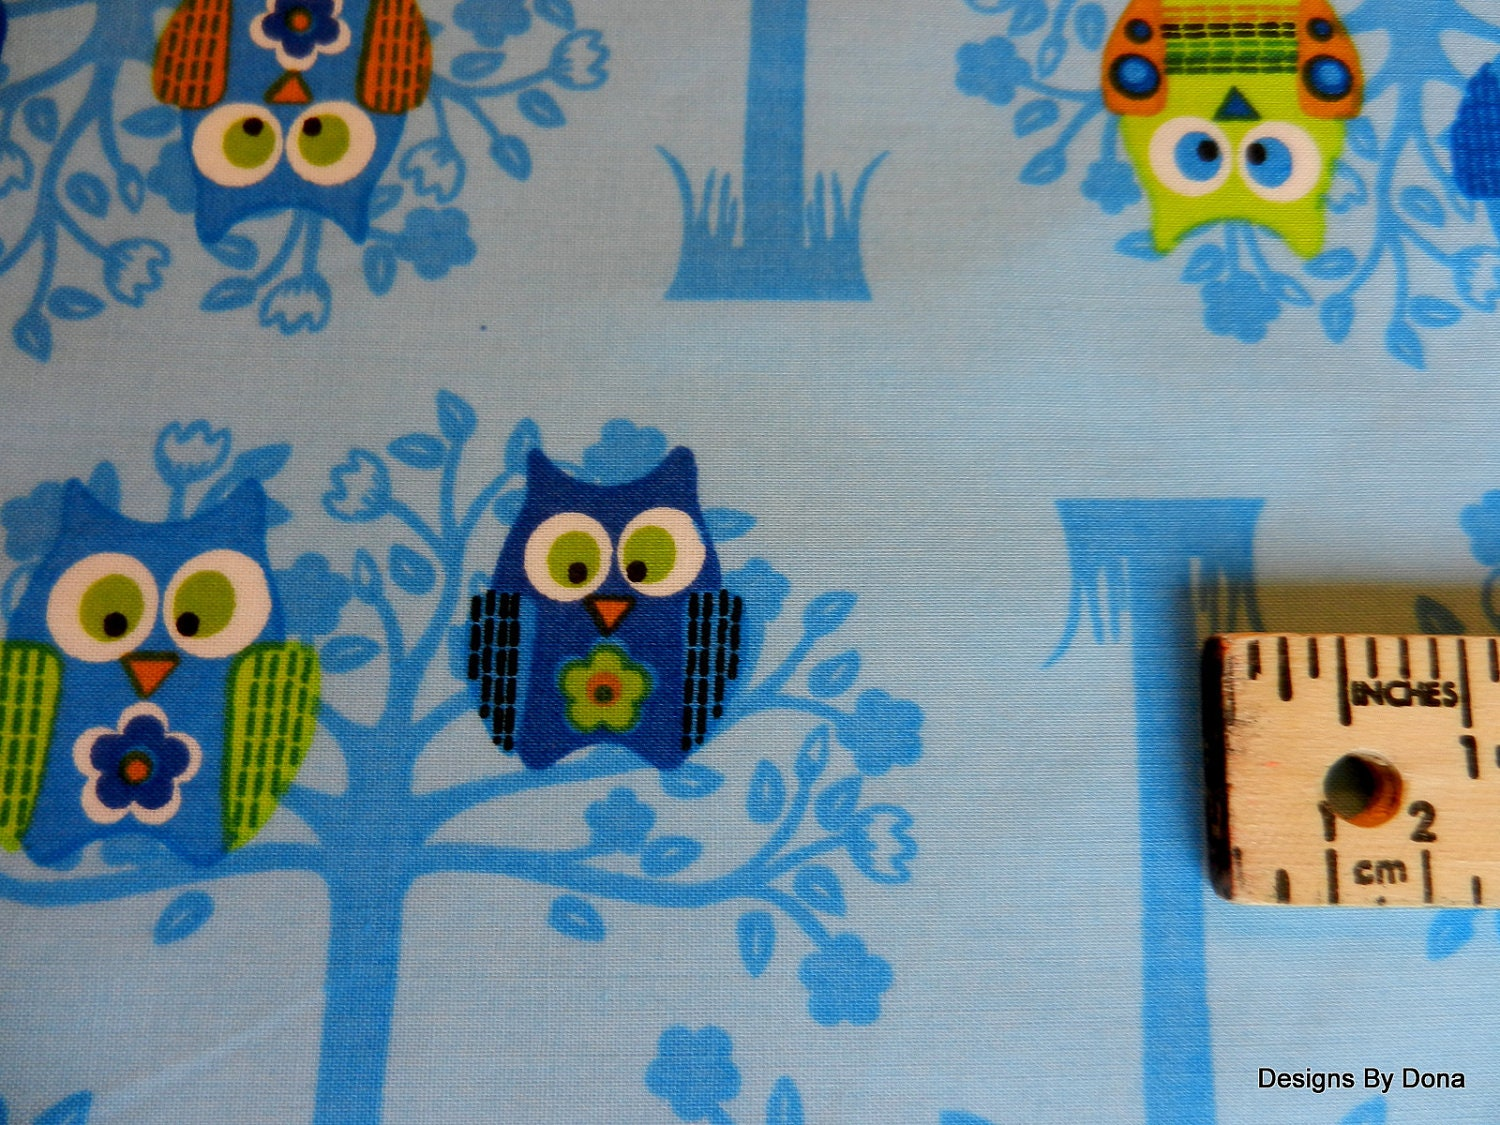 One yard cut quilt fabric sale clearance owls in trees for Clearance craft supplies sale